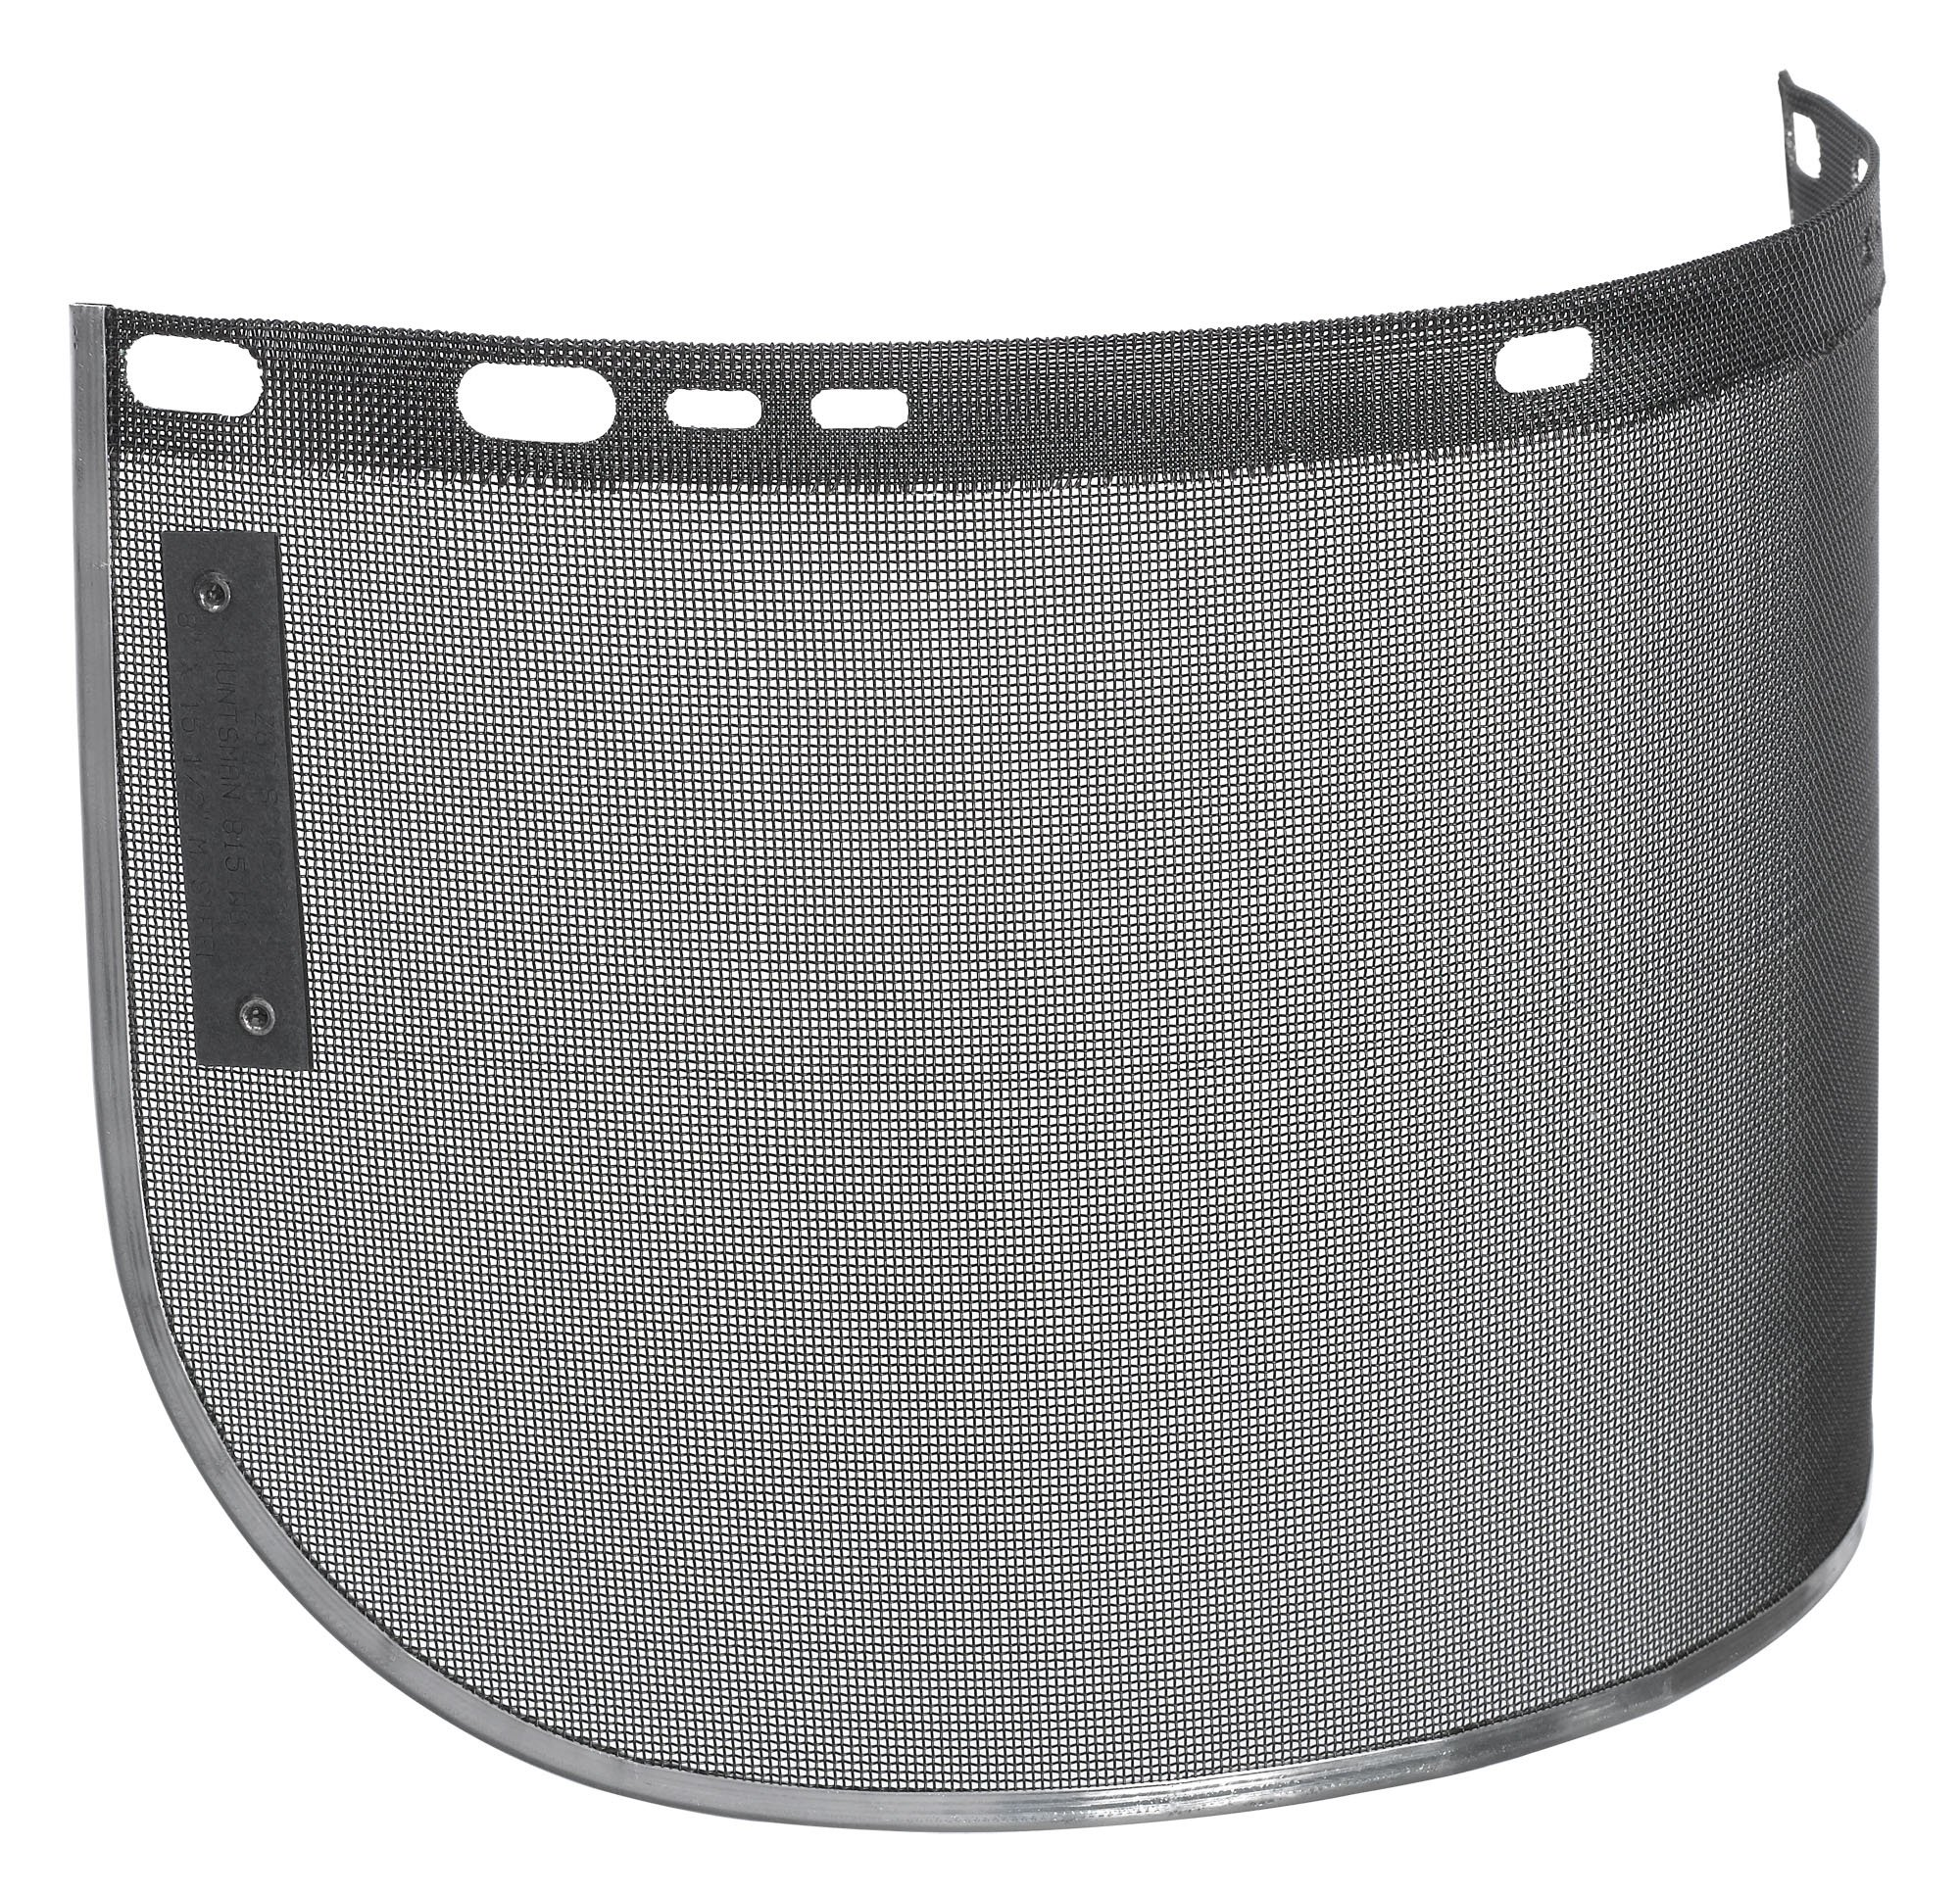 Jackson Safety F60 815 Mesh Steel Screen Aluminum Bound Wire Face Shield, 15-1/2'' Length x 8'' Width (Case of 12)